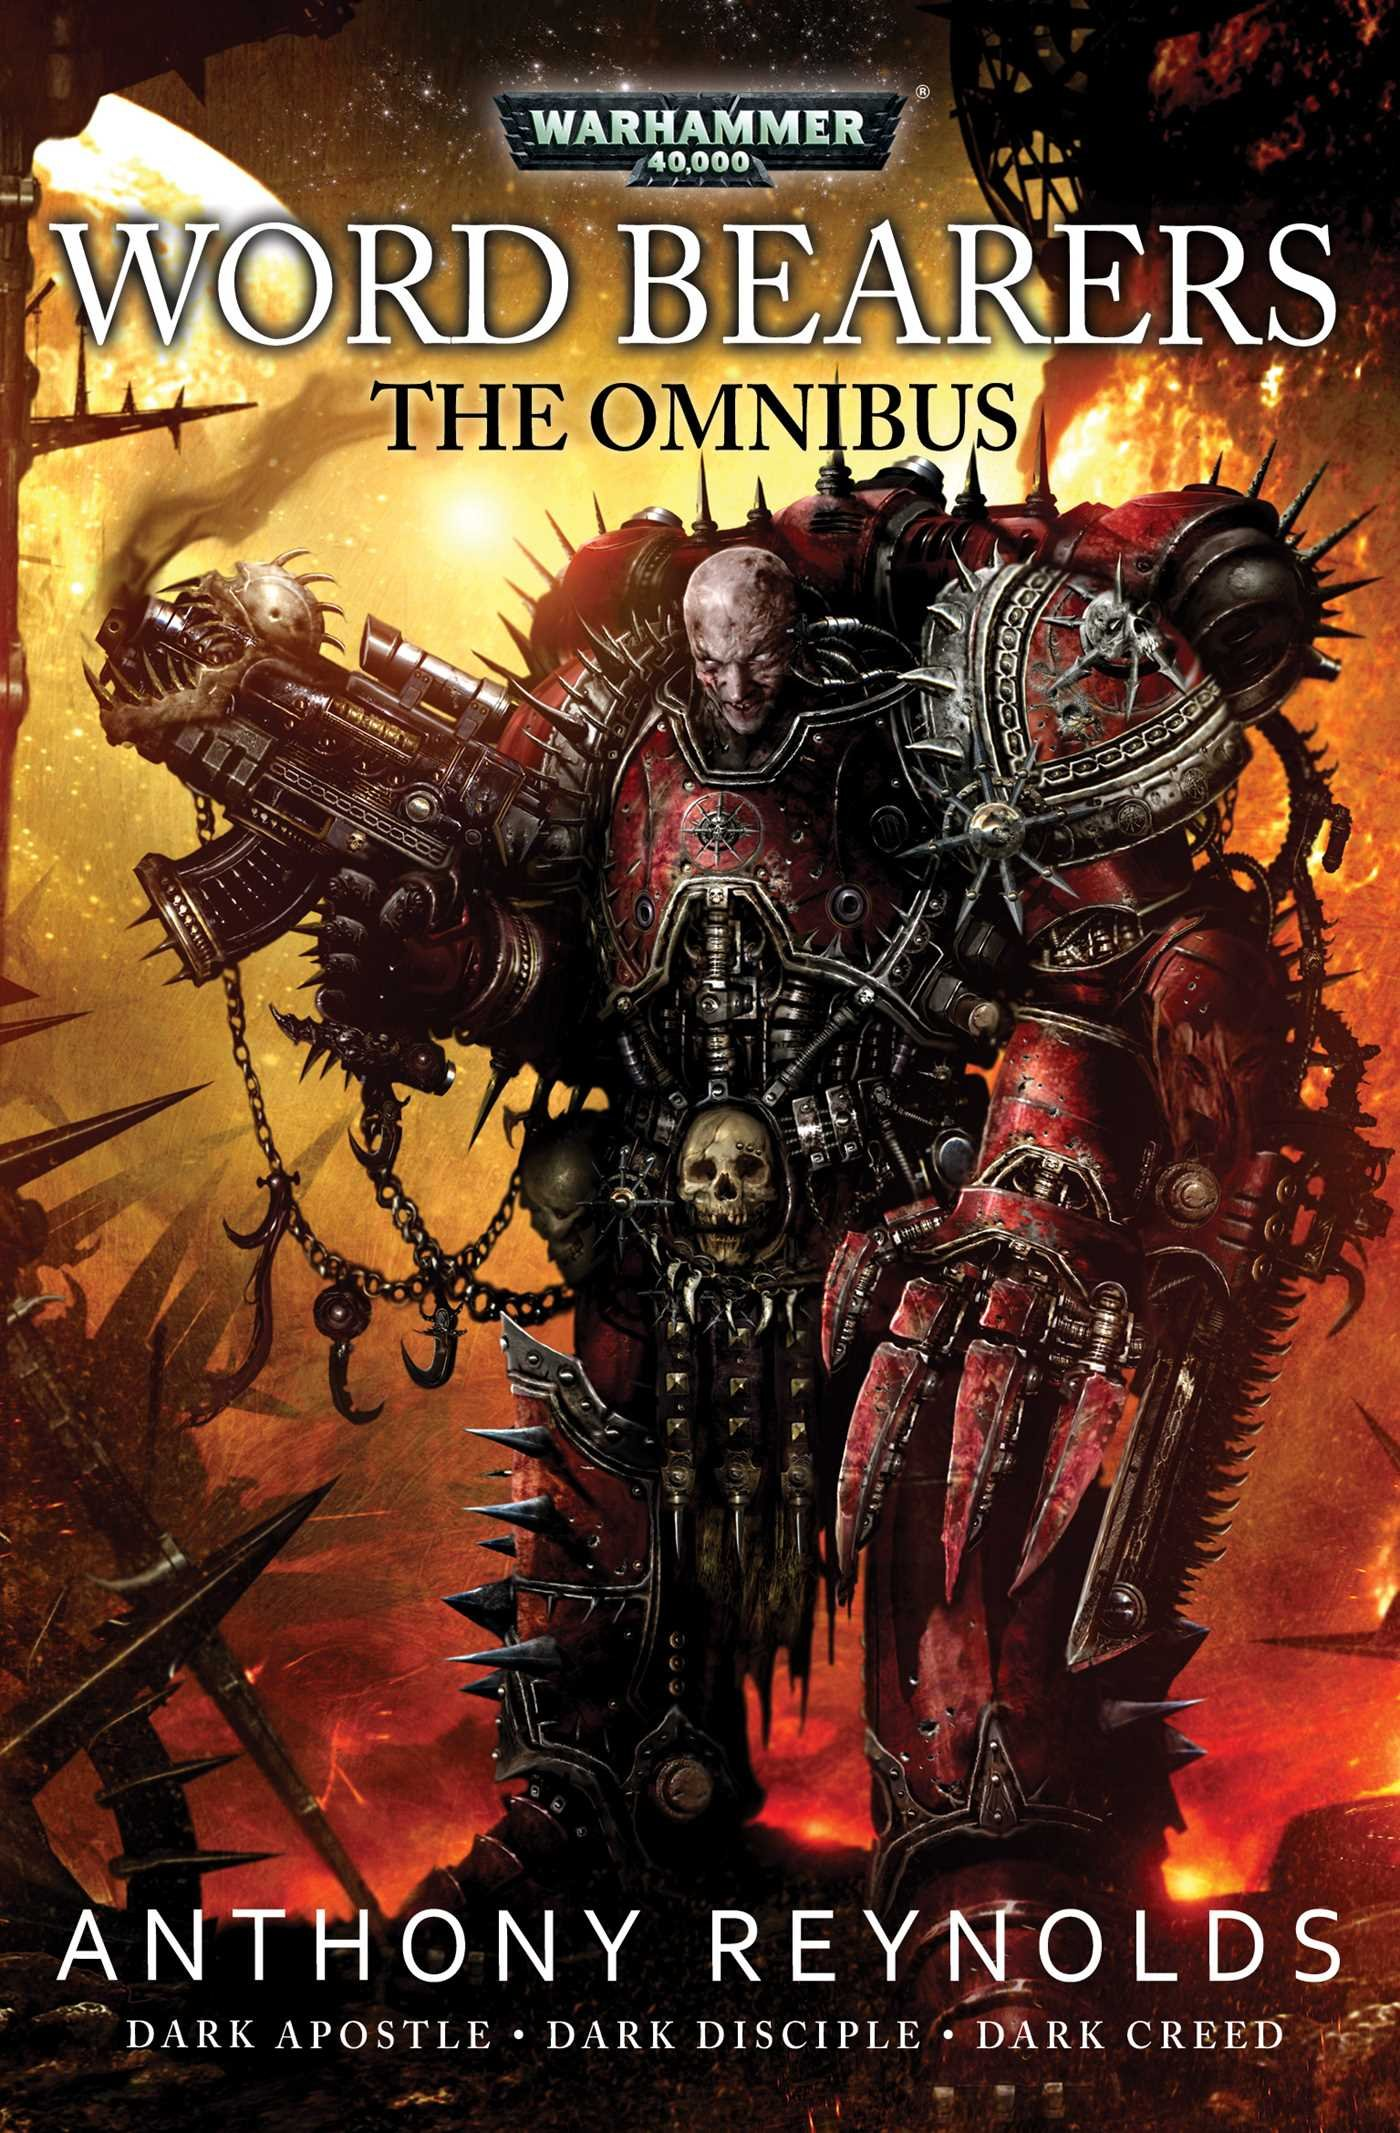 Word Bearers: The Omnibus: Anthony Reynolds: 9781785721168